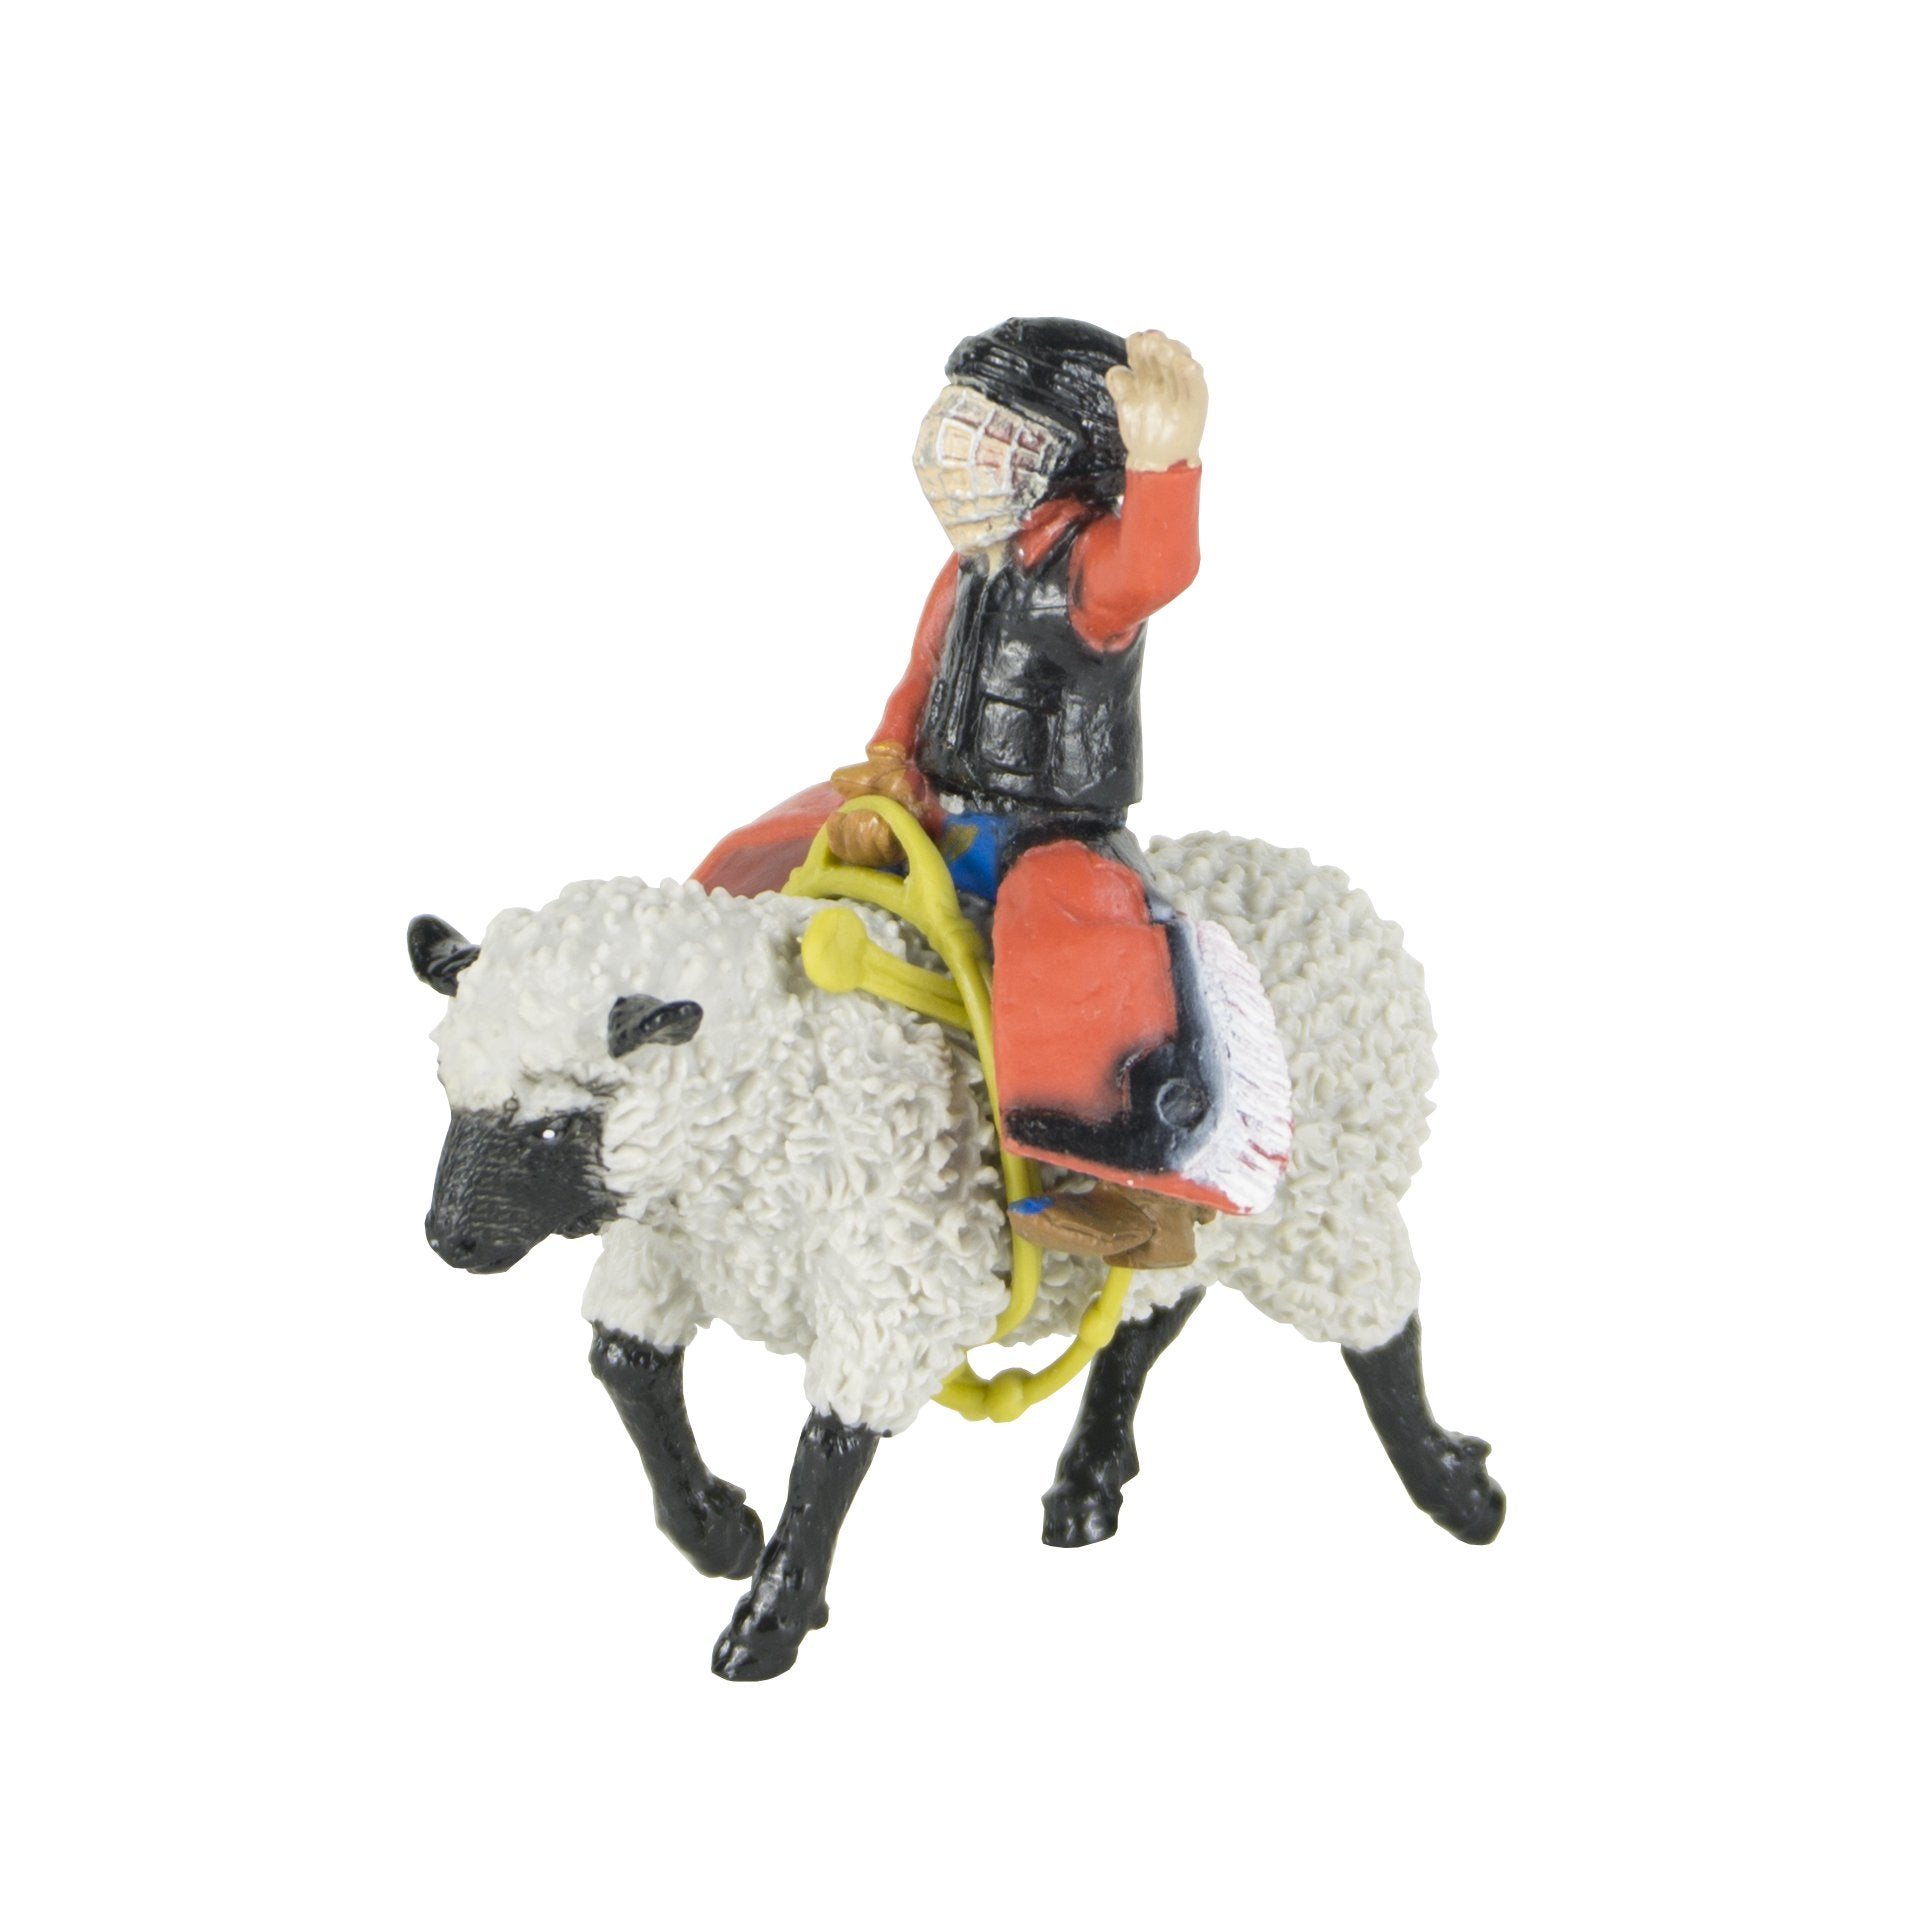 Big Country Toys Mutton Buster